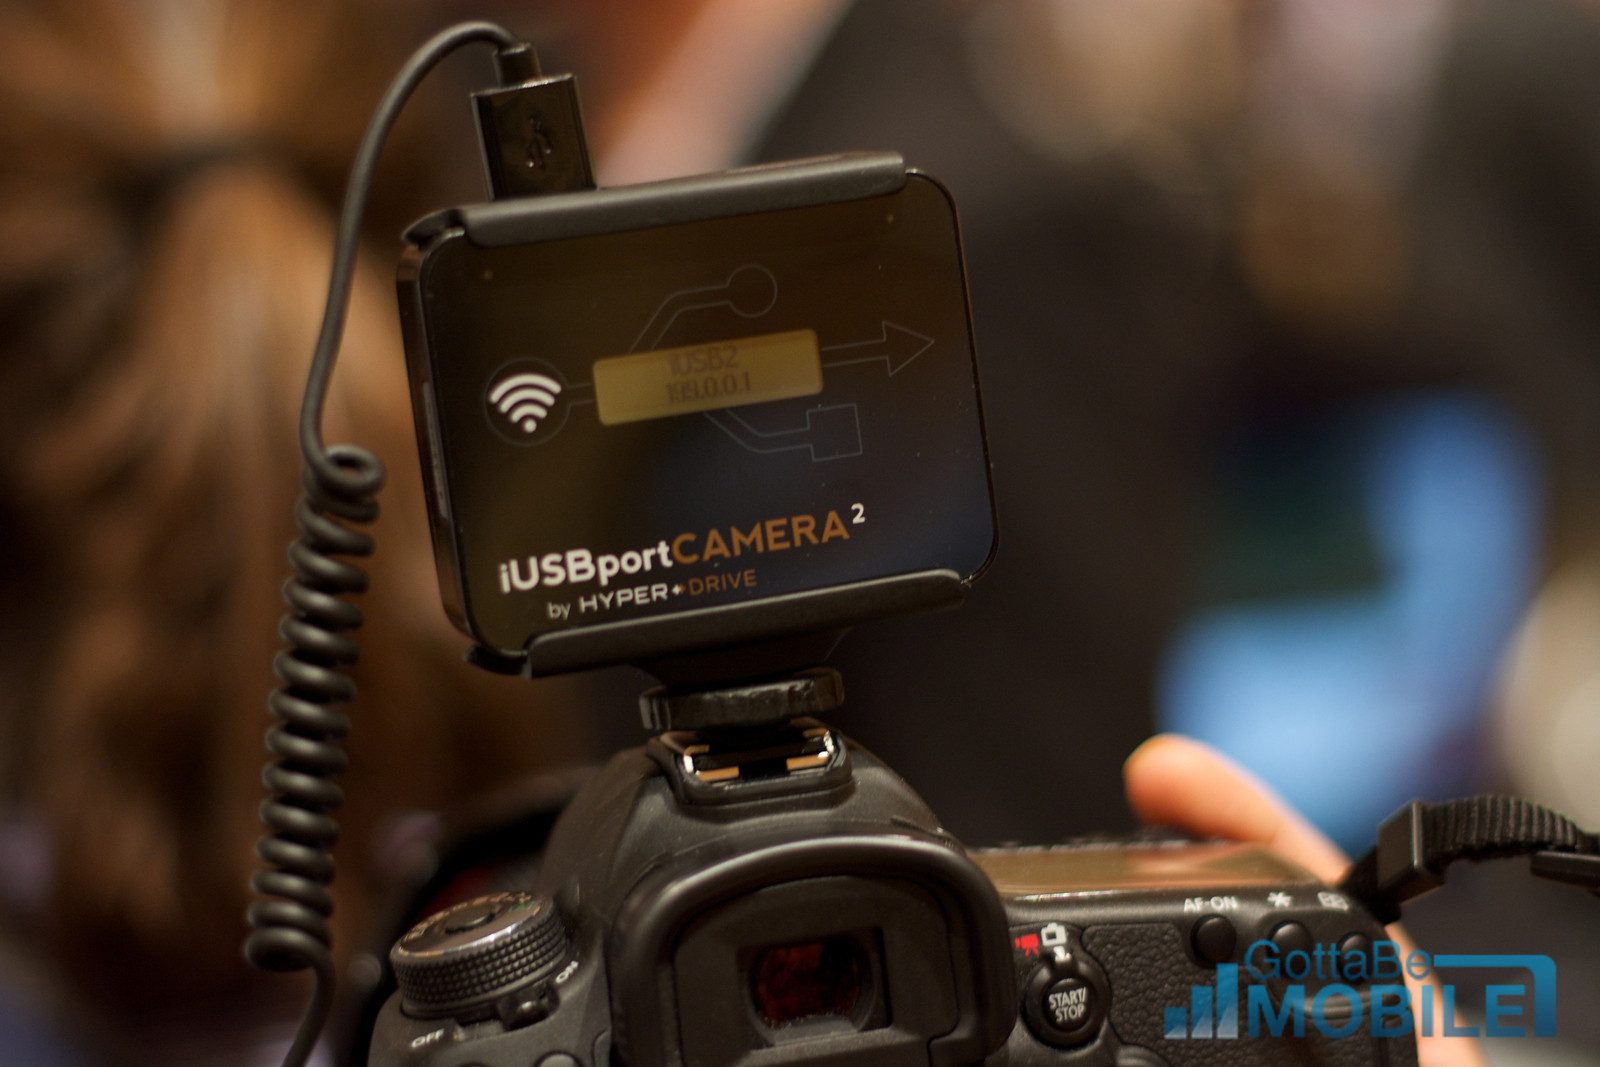 iUSBportCAMERA2 Connects DSLR to iPhone, iPad & Android